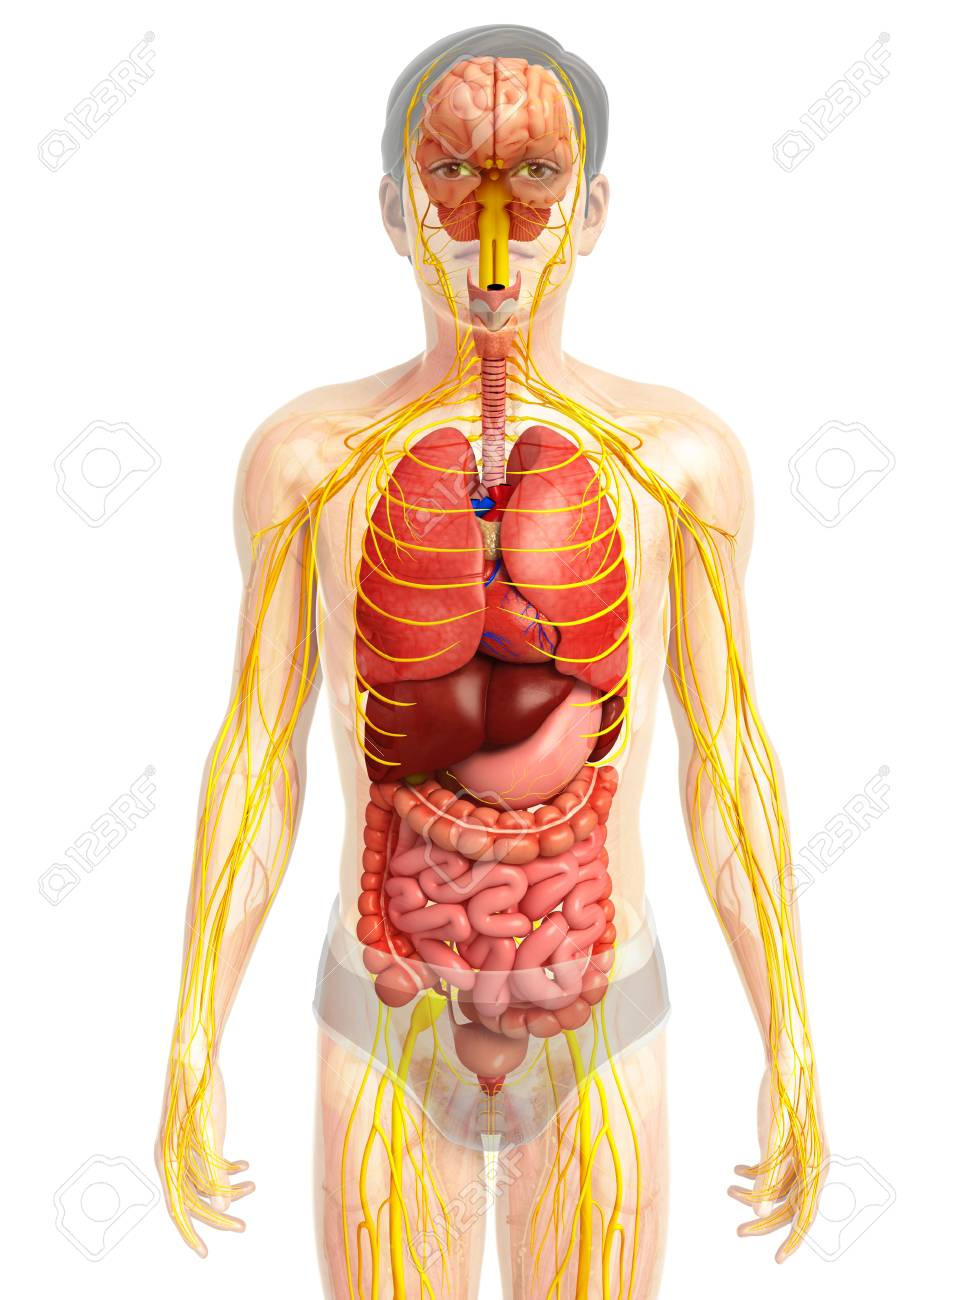 medium resolution of illustration of male body with nervous and digestive system artwork stock illustration 44278606